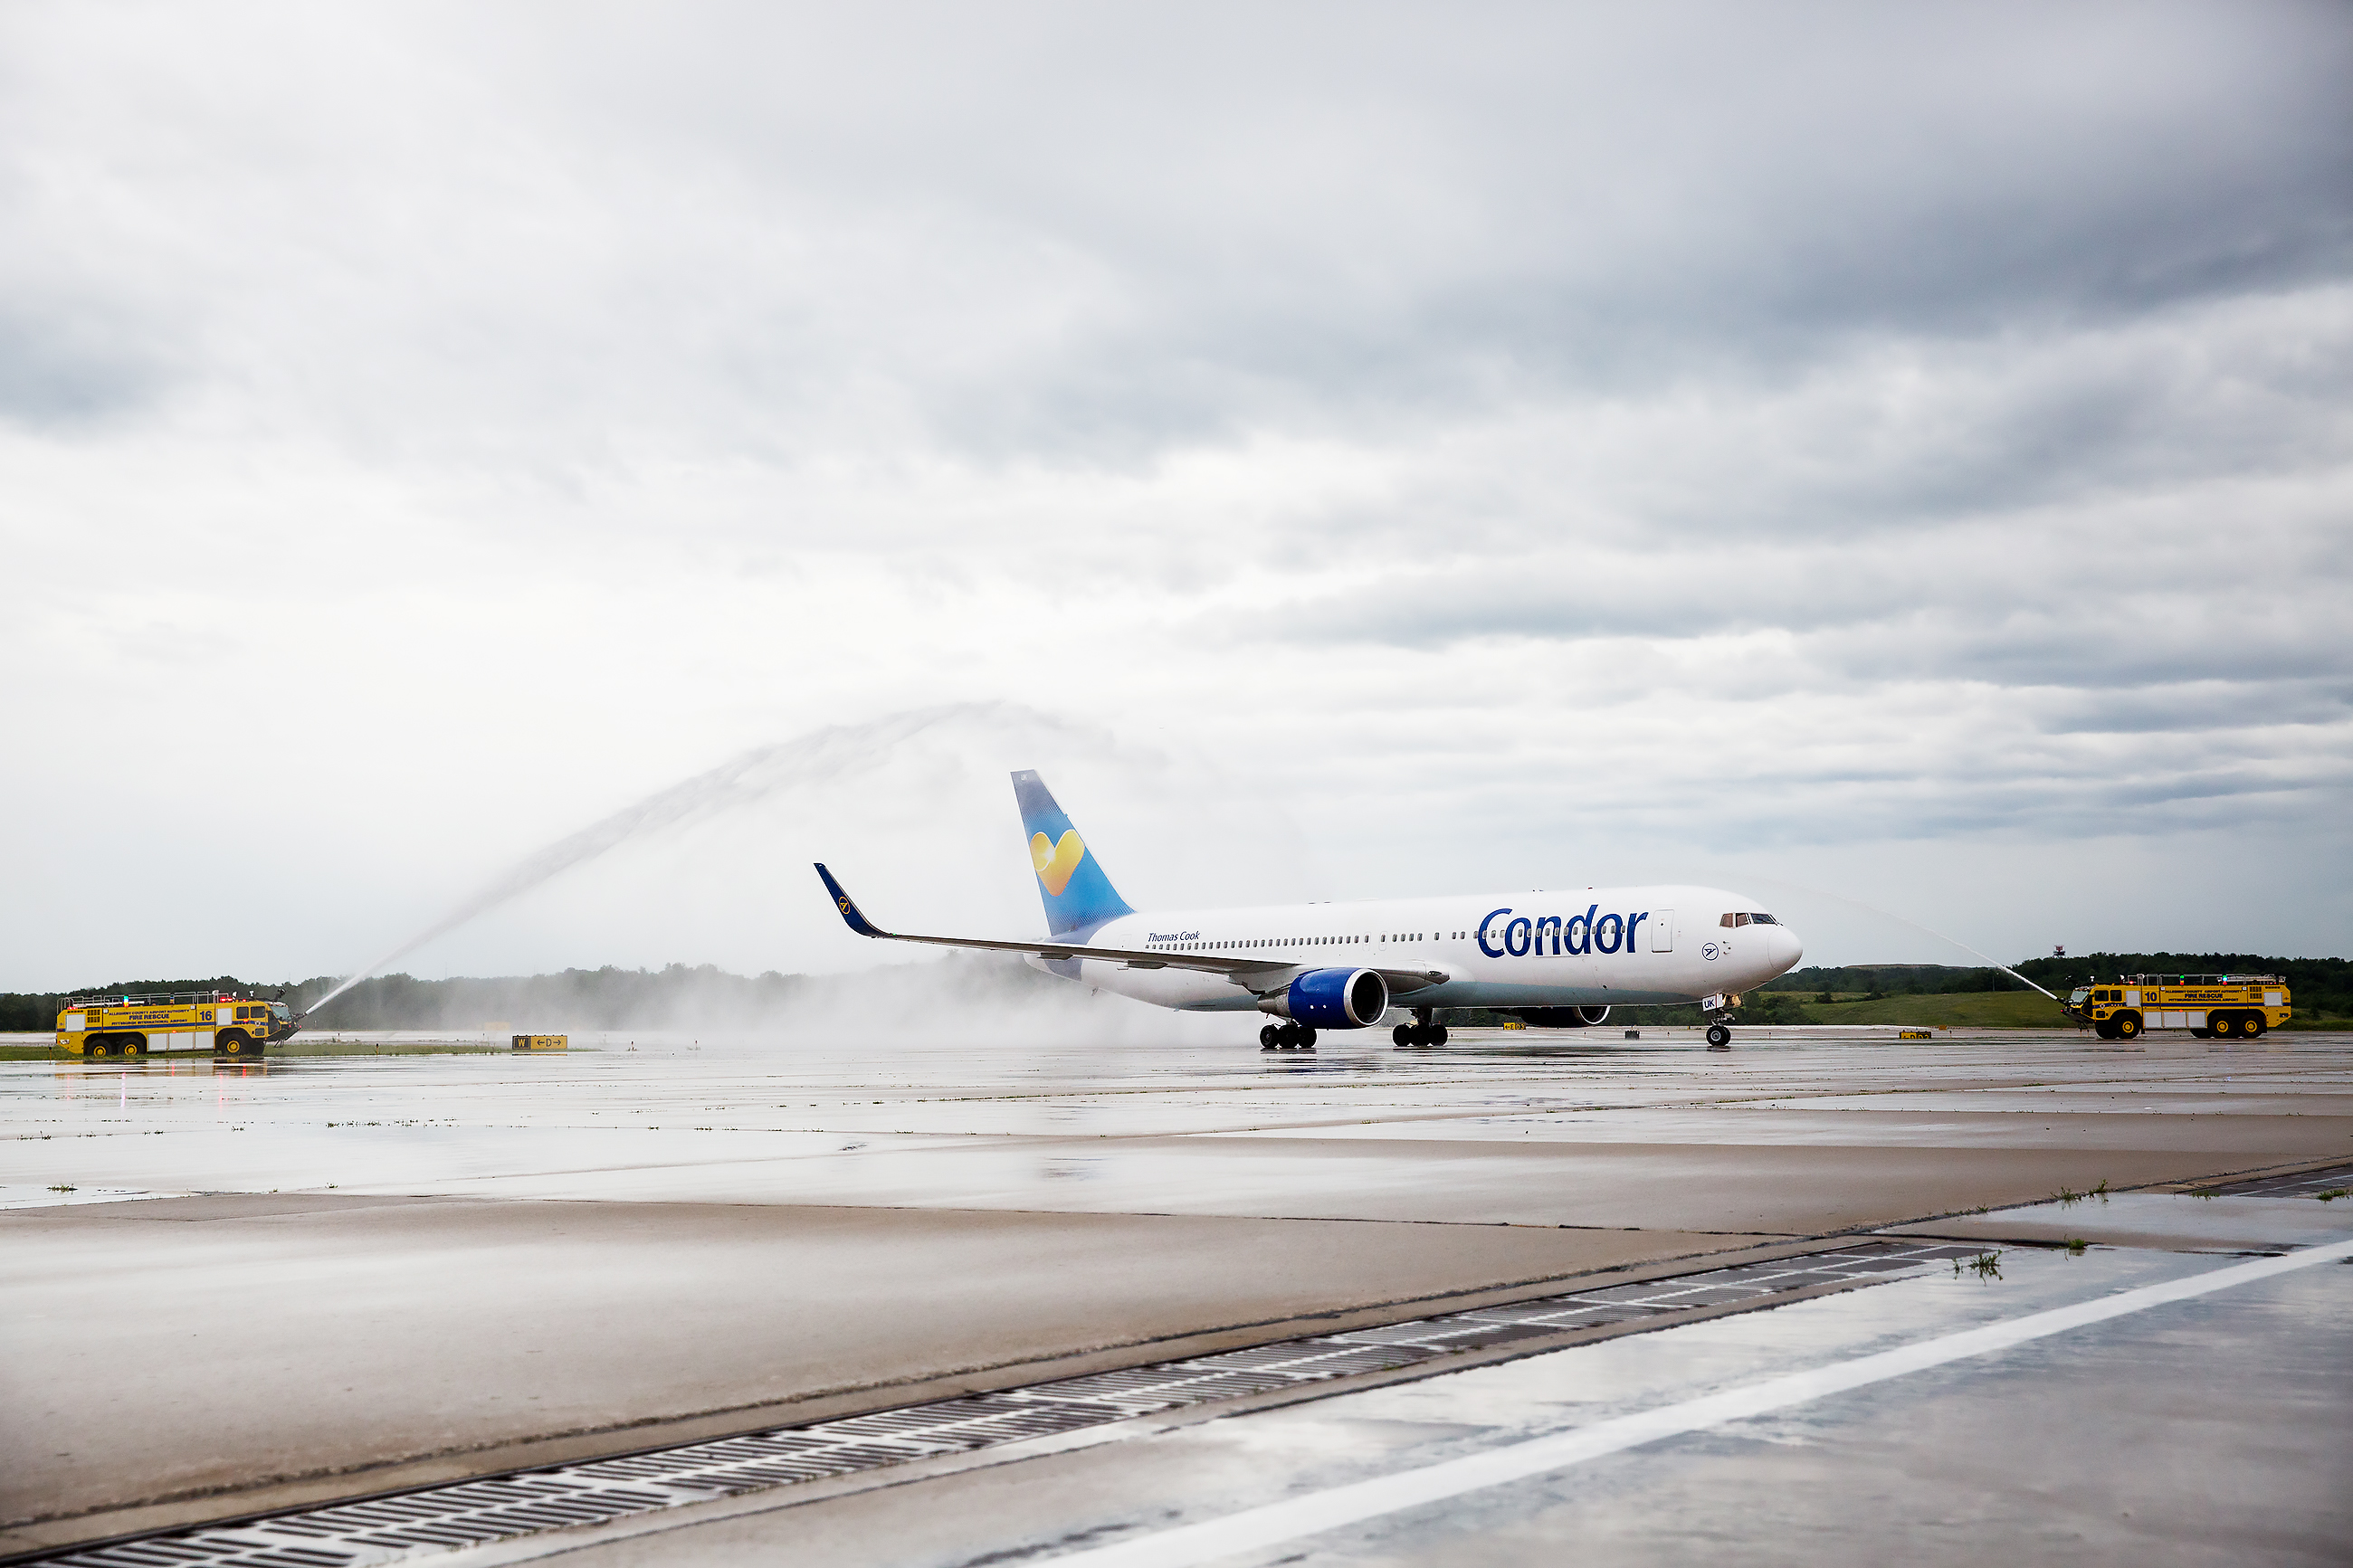 20170622adCondorFlight-02-1 The first Condor Airlines flight to Pittsburgh International Airport receives a water salute in June. The German airline will be providing nonstop service twice a week to Frankfurt.